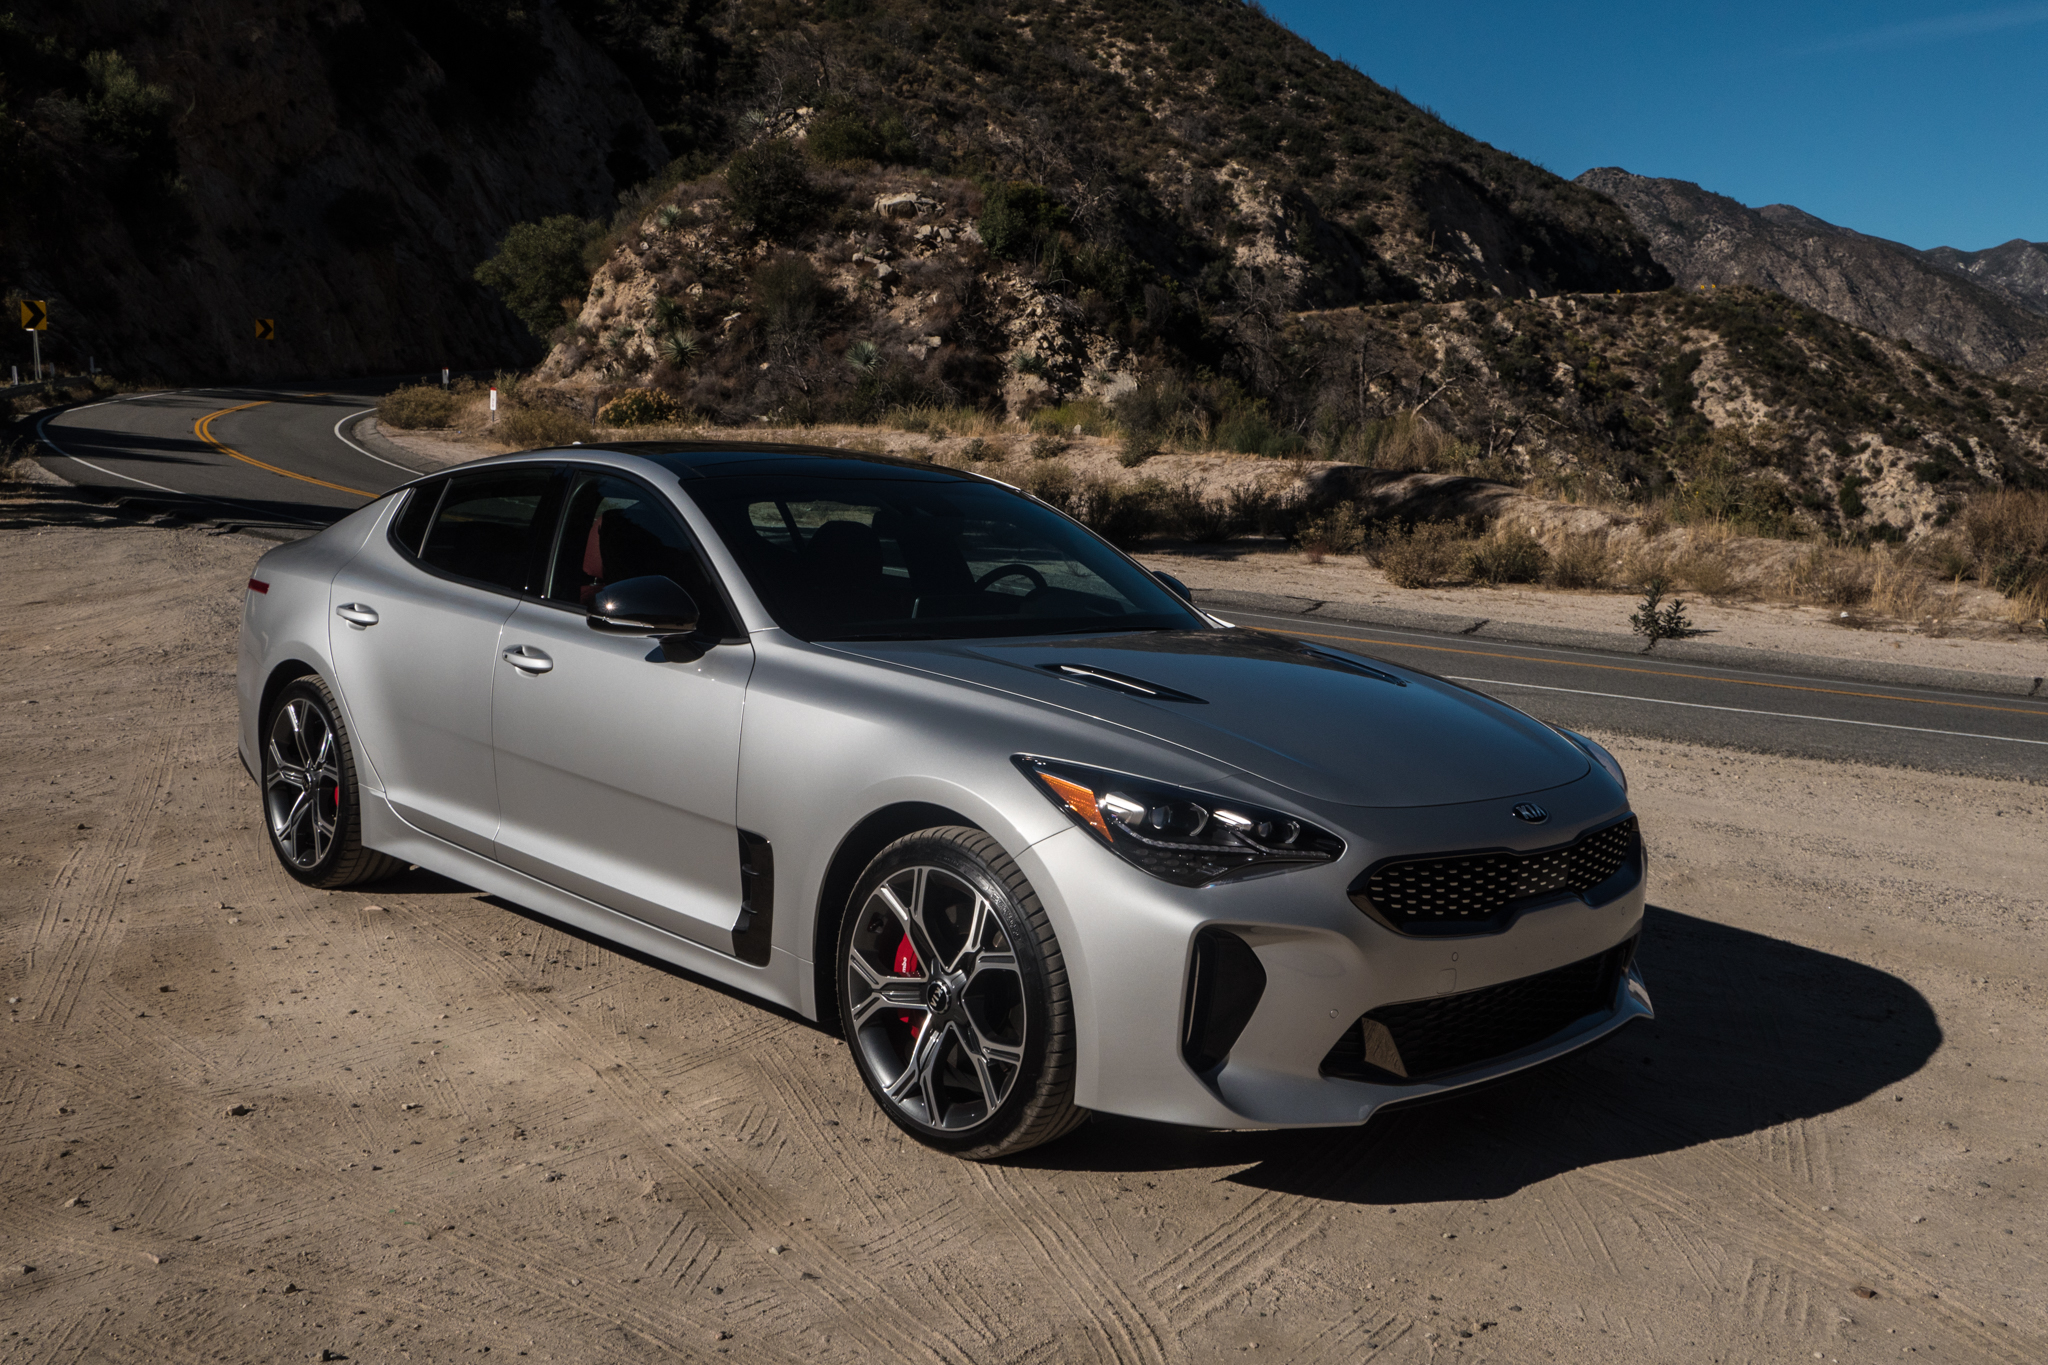 Genesis Coupe 2018 >> The Internet's favorite car of 2018 is the Kia Stinger GT, and it's good | Ars Technica